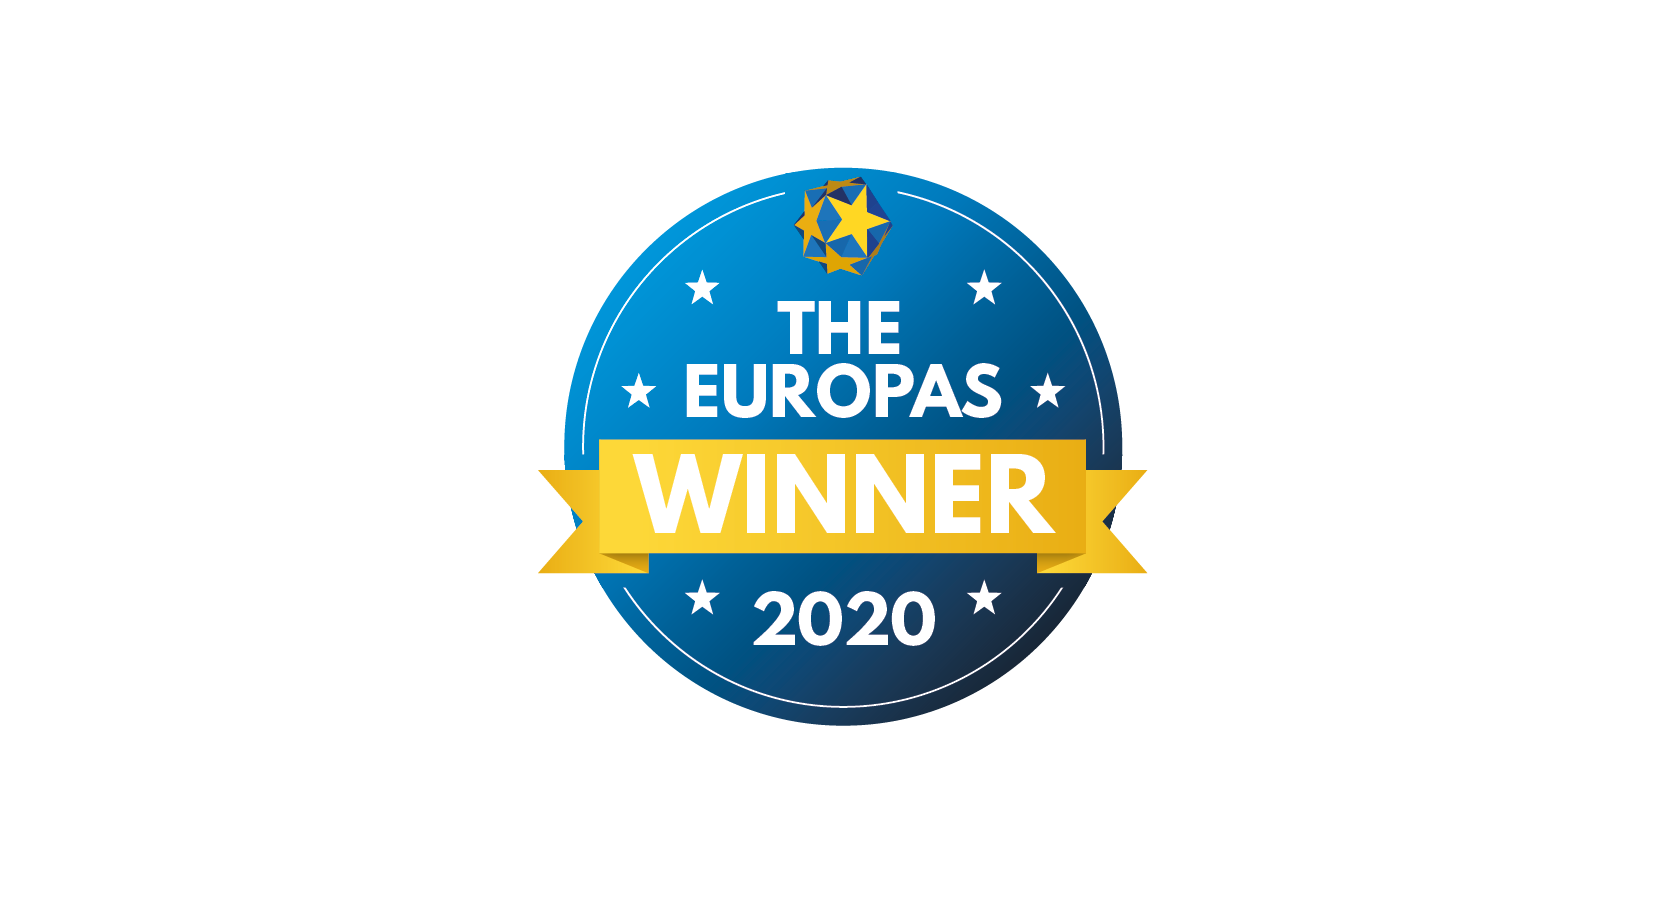 iFarm wins The Europas Awards 2020 as the Hottest Ag/FoodTech Startup